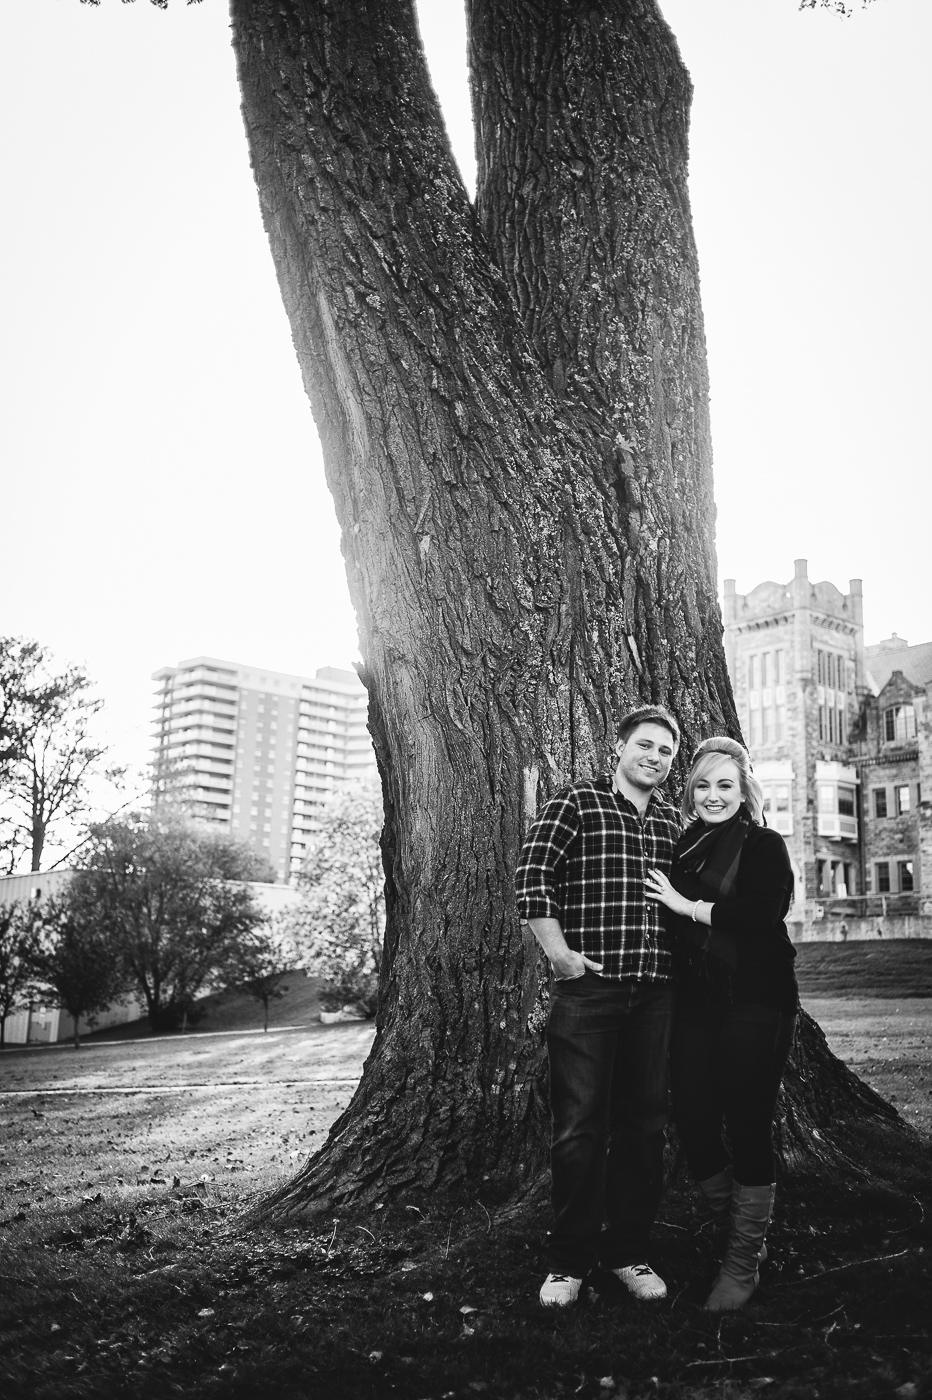 alicia_ghislain_engagement_blog22.jpg